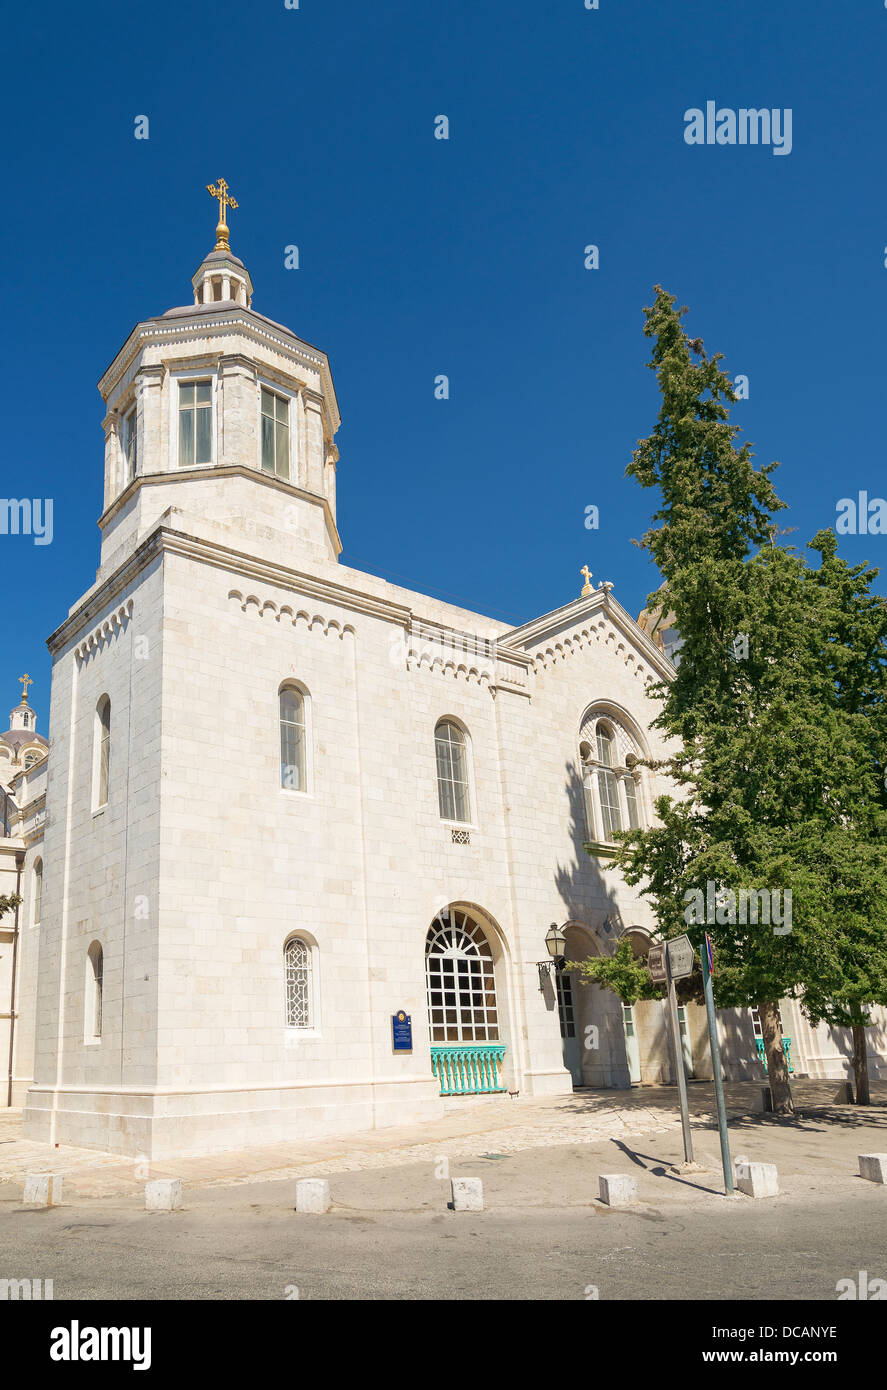 russian church in jerusalem old town israel - Stock Image